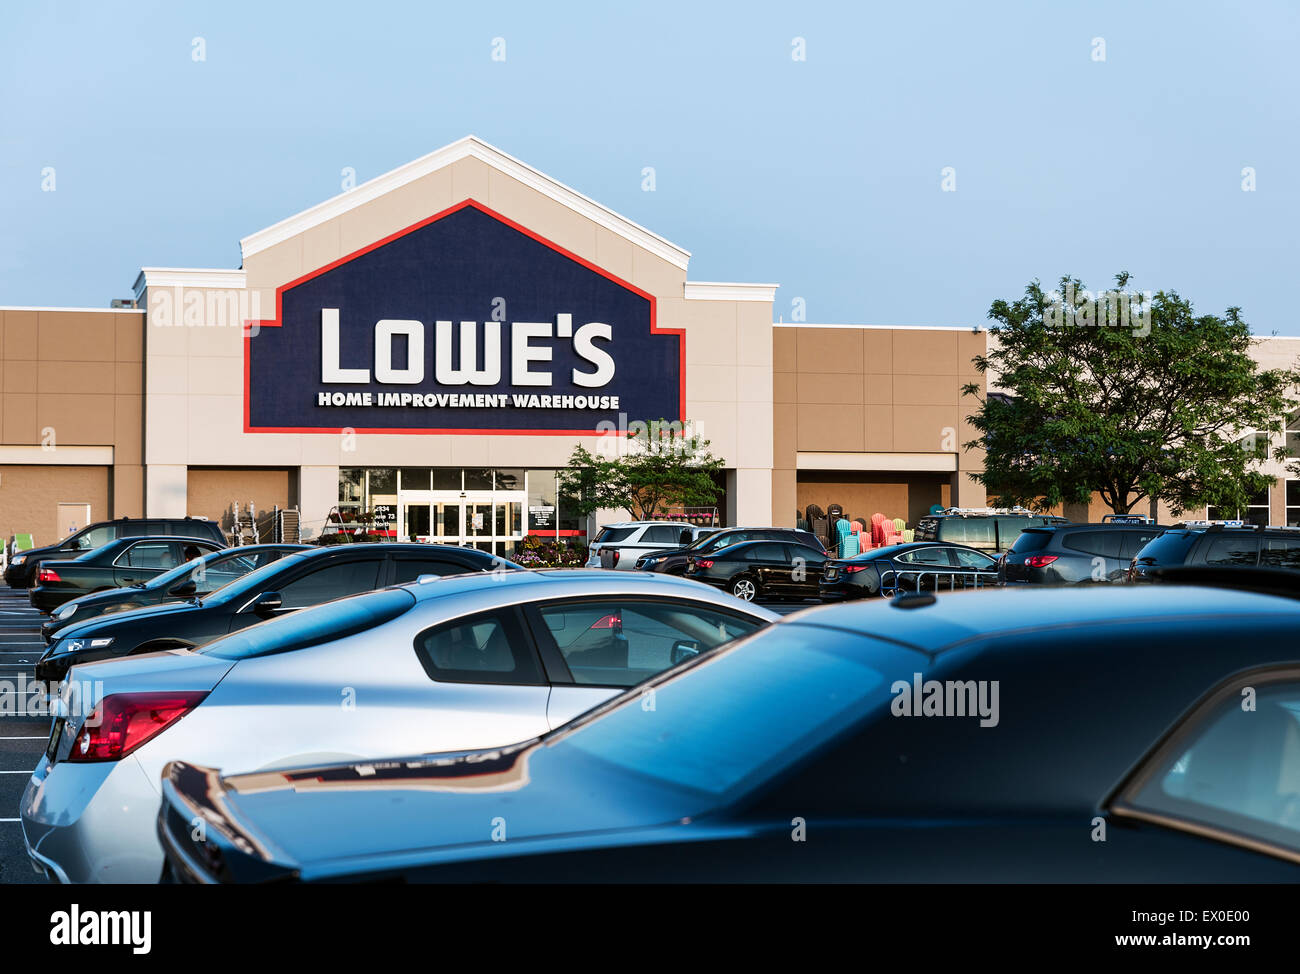 Lowe's home improvement superstore. - Stock Image